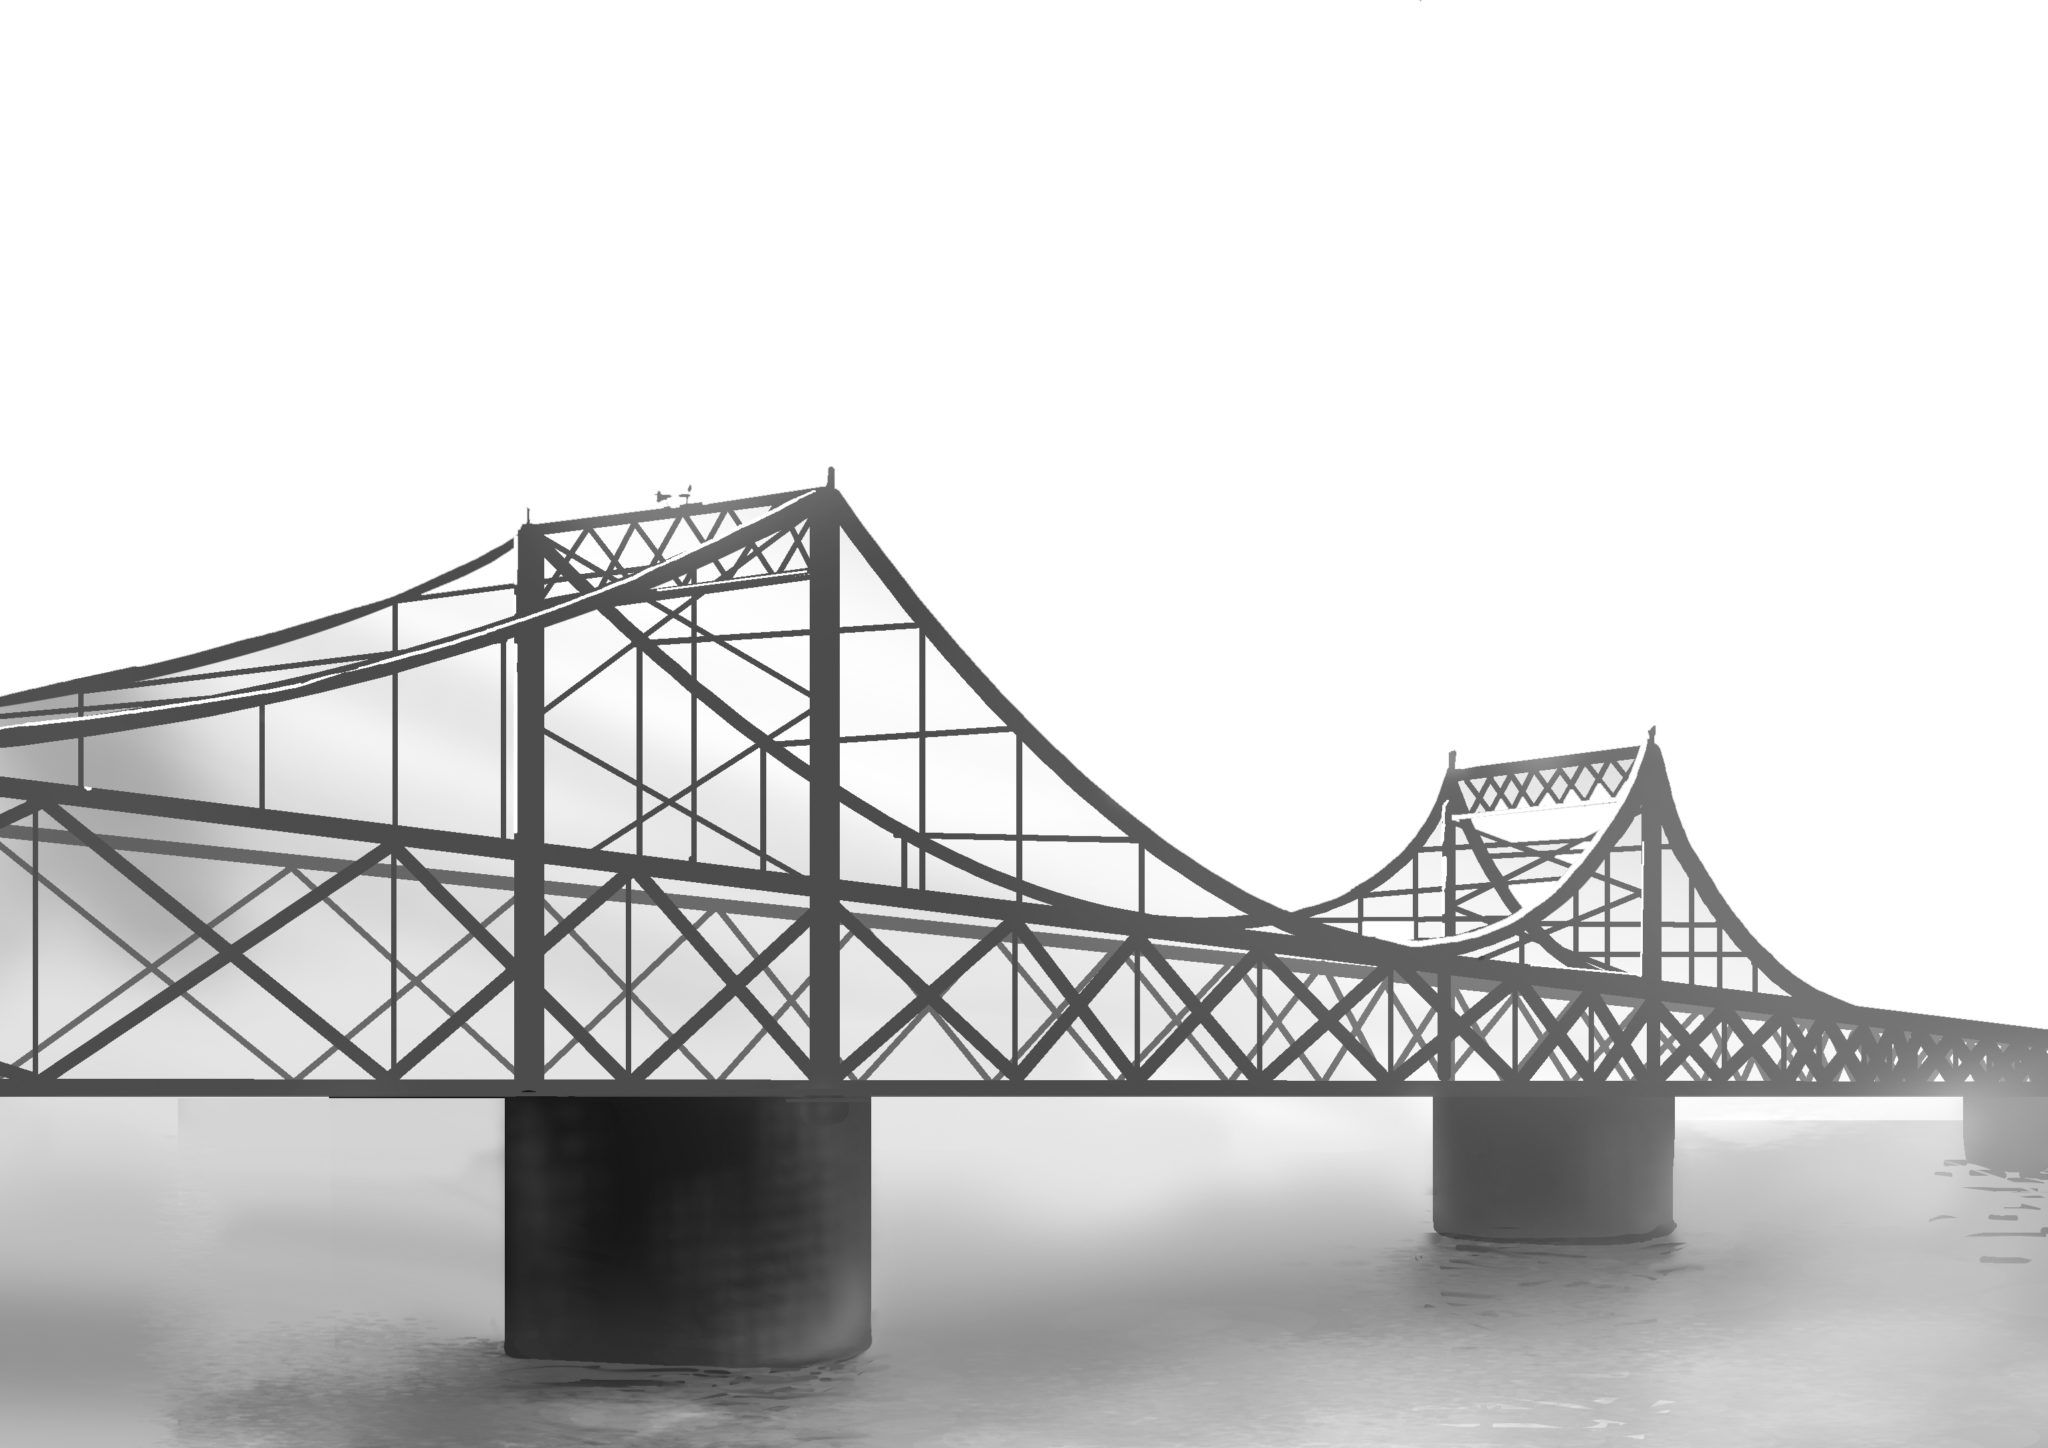 Graphically designed black and white image of the bridge, with mist around the base.